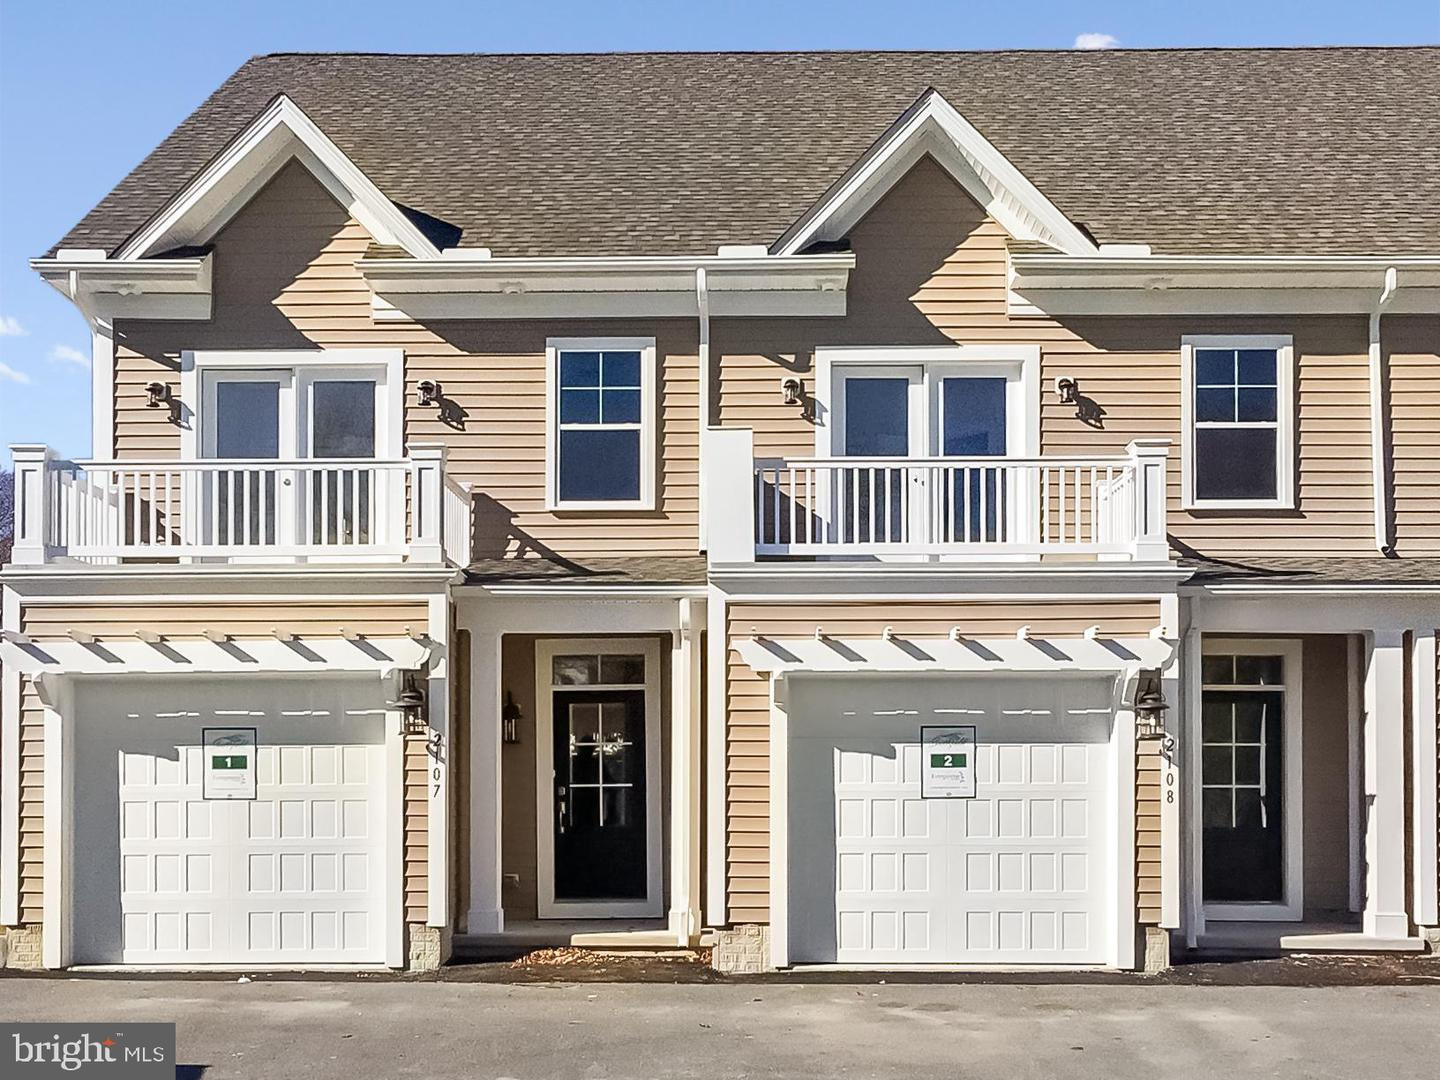 DESU168540-304288076192-2020-09-09-11-39-22 32206 Nassau Rd #3 | Lewes, DE Real Estate For Sale | MLS# Desu168540  - Lee Ann Group